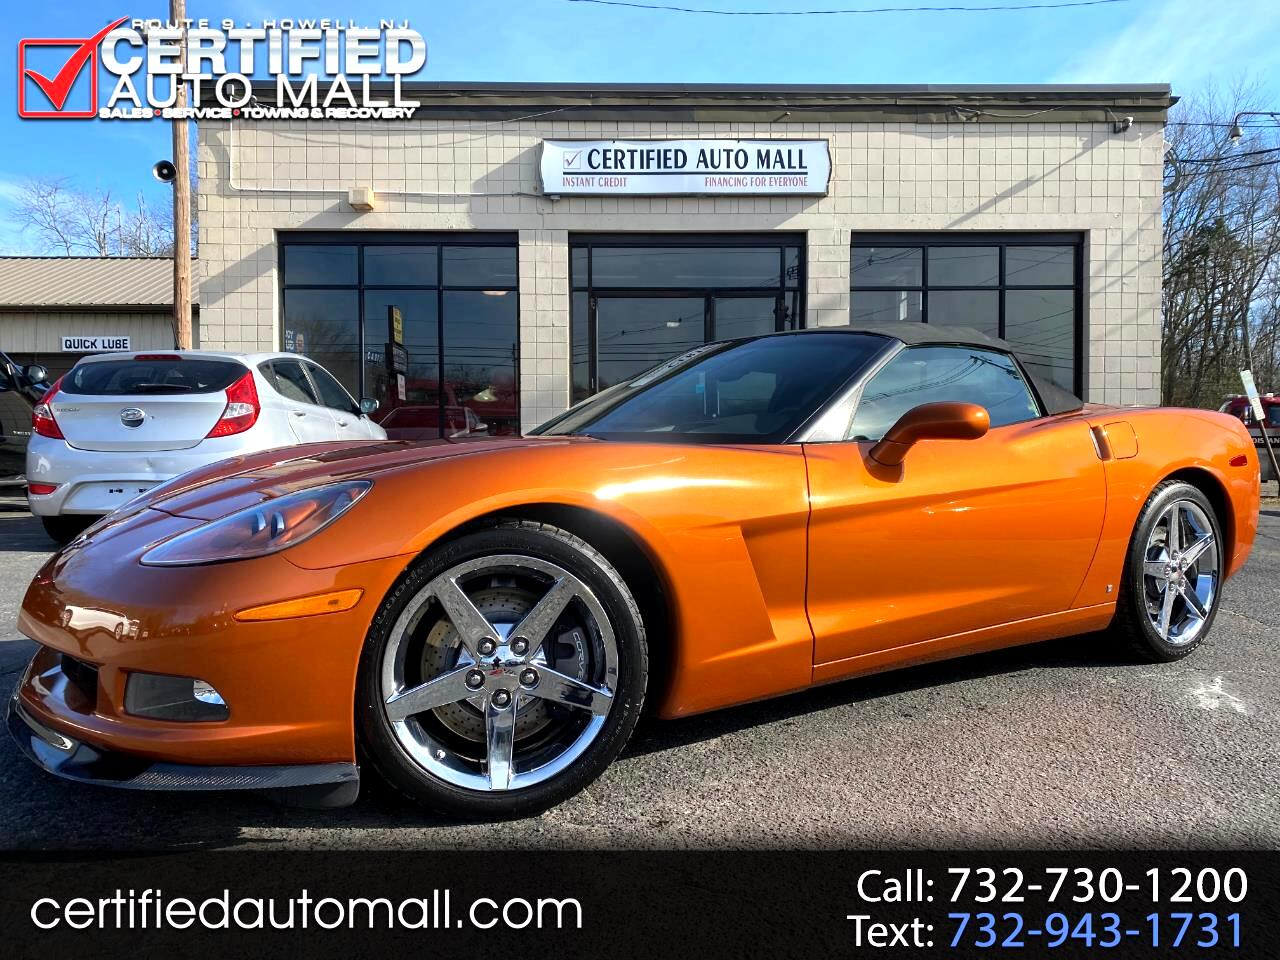 Chevrolet Corvette Z51 3LT Convertible 2007